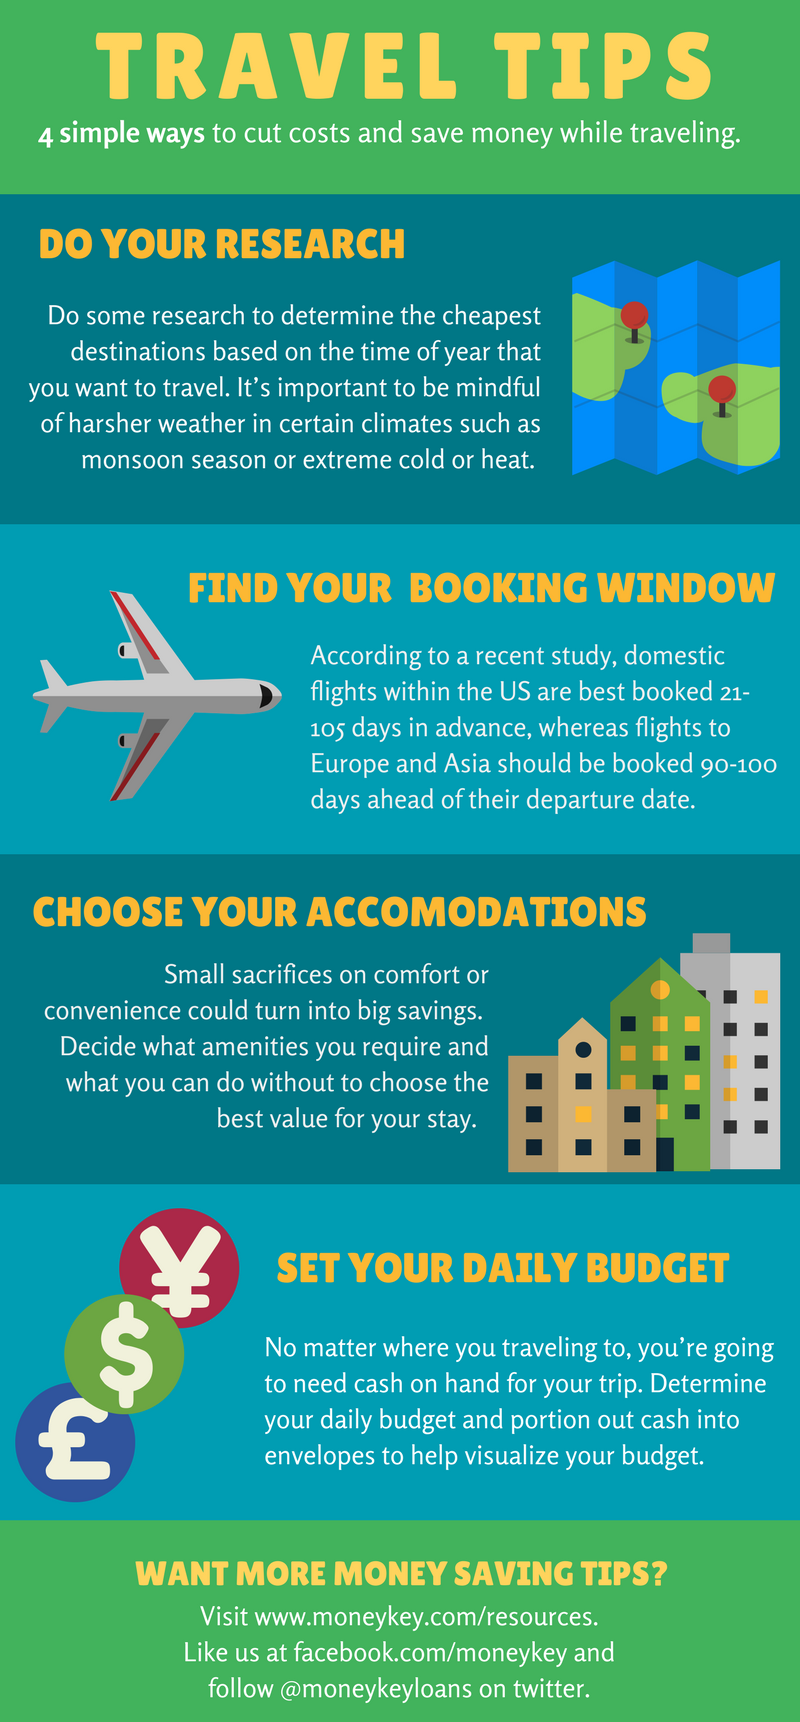 4 Simple Ways to Save Money While Traveling